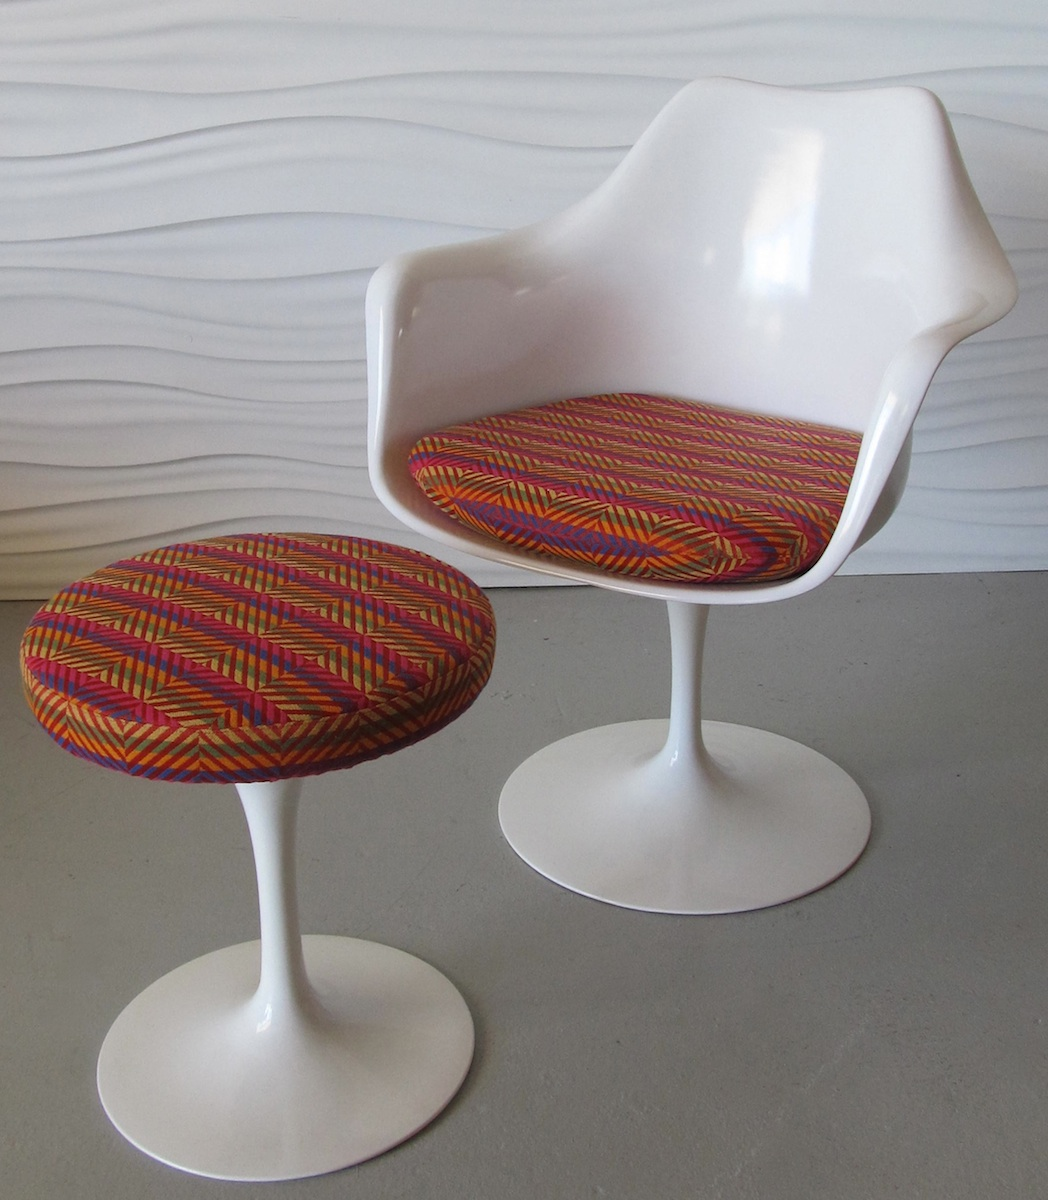 The transformation ... & Saarinen Tulip Chair u0026 Stool | Modern Chair Restoration